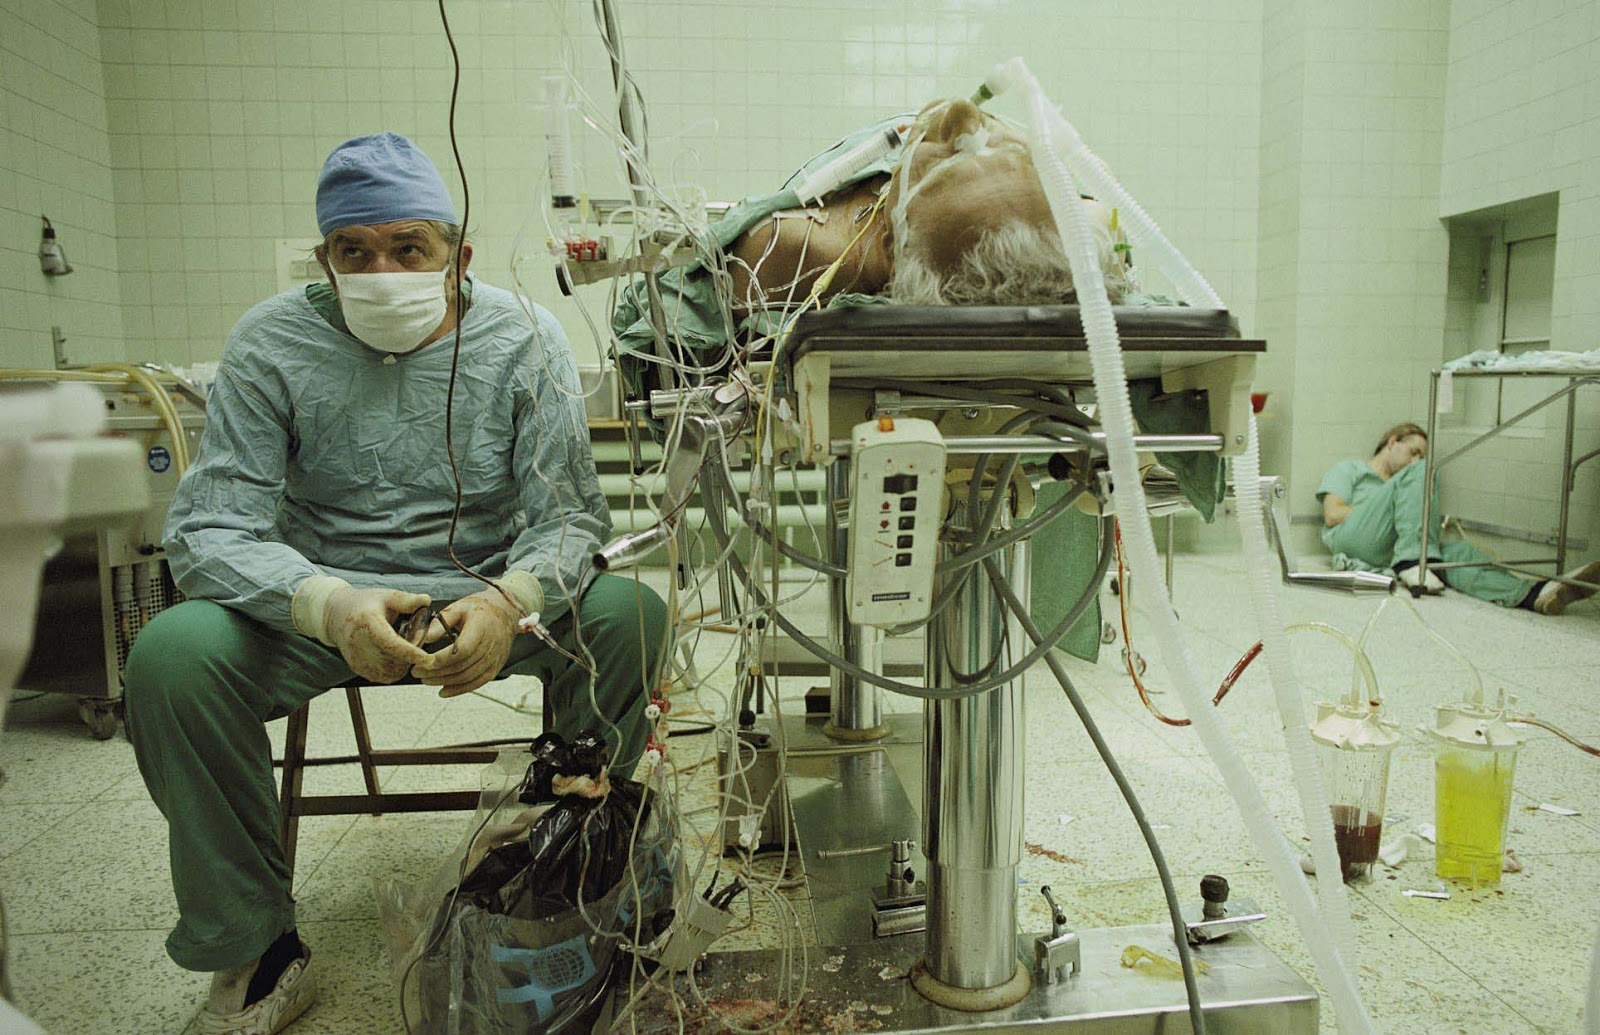 Dr. Zbigniew Religa monitors his patient's vitals after a 23 hour long heart transplant surgery. His assistant is asleep in the corner.